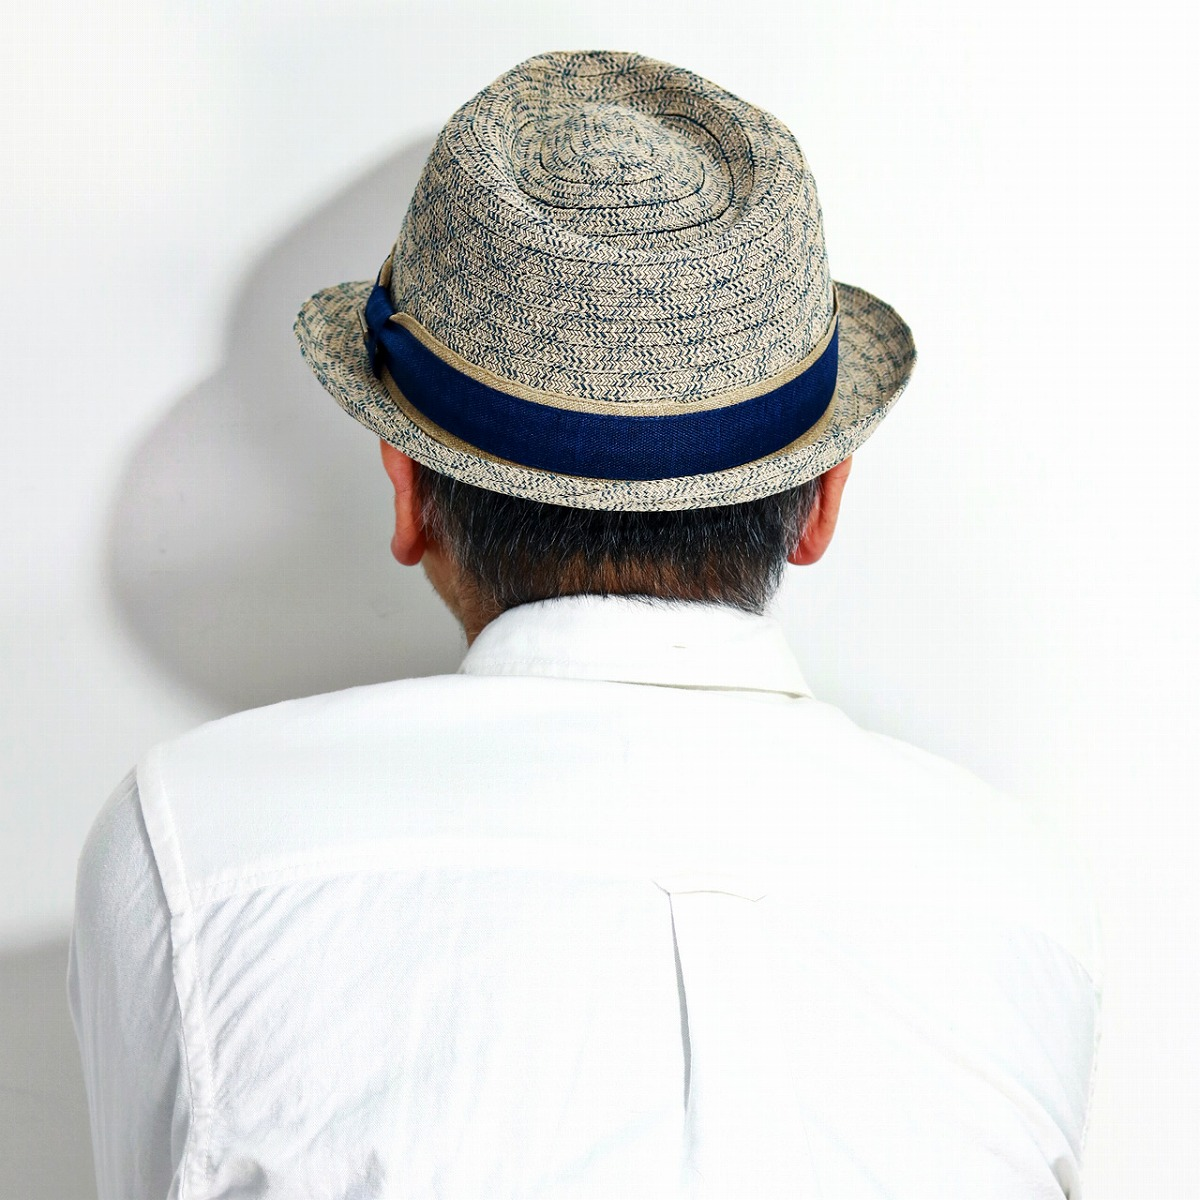 2dccb9ef ... The summer material M L XL dark blue navy [fedora hat] man present  Father's Day